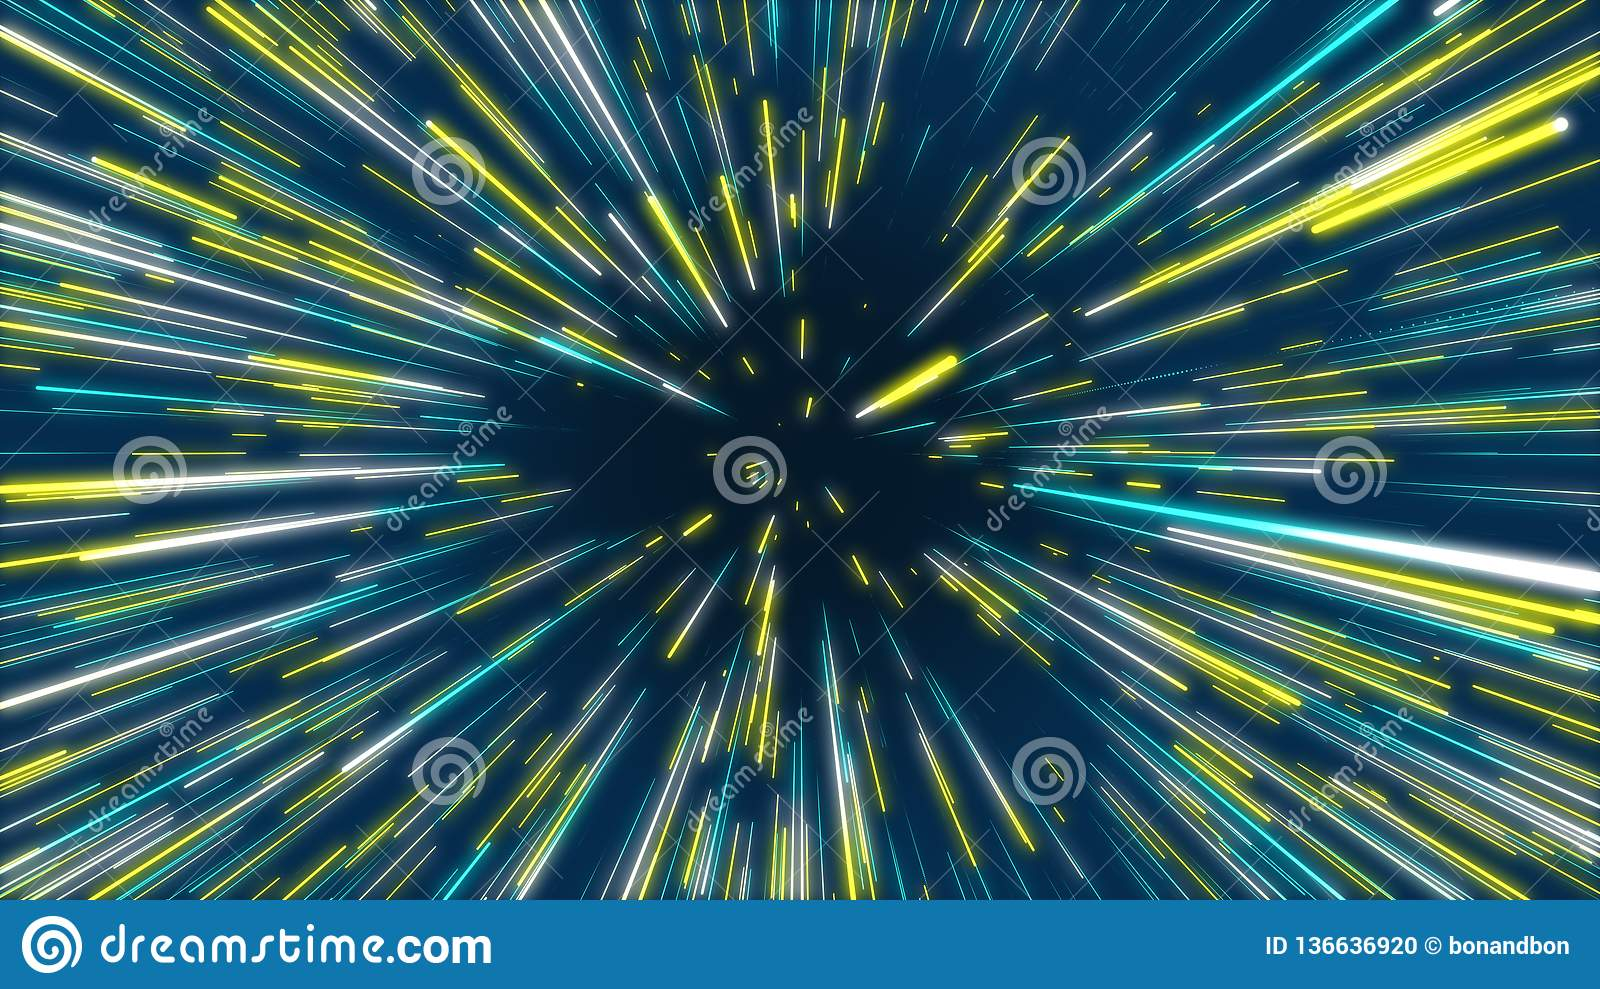 Blue and yellow abstract tunnel radial lines effect background